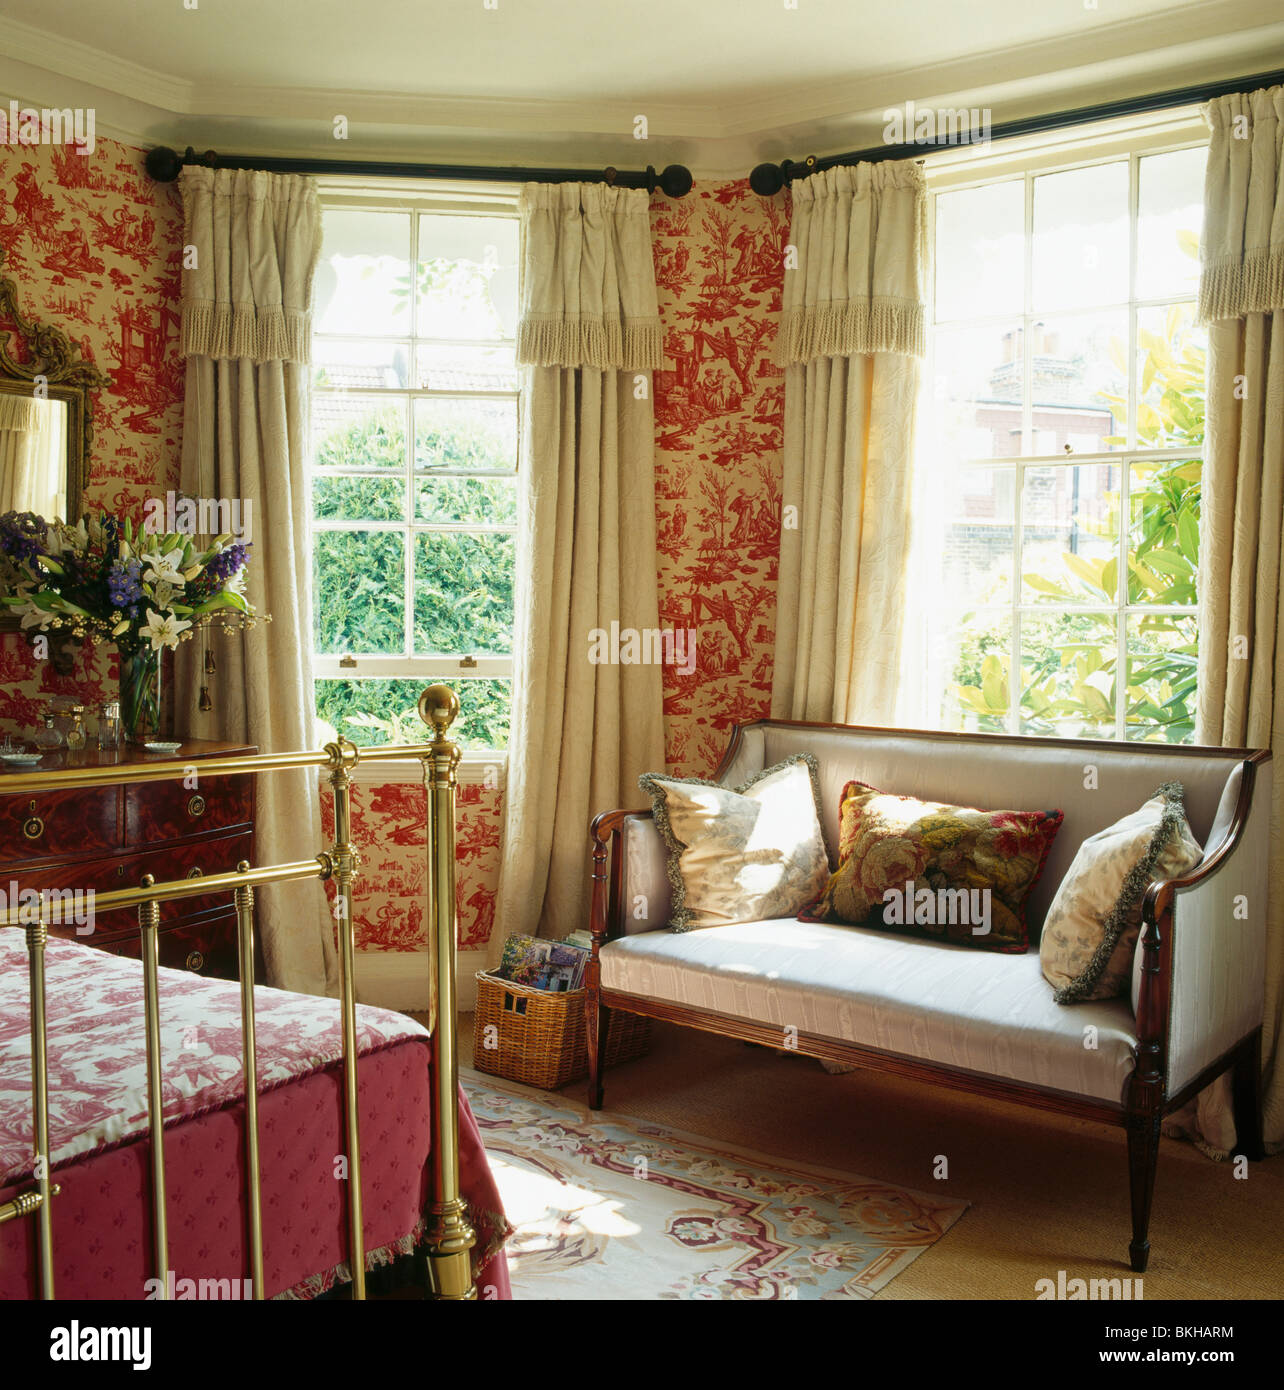 Red Toile De Jouy Wallpaper In Bedroom With Antique Sofa In Front Of Window  With Cream Curtains